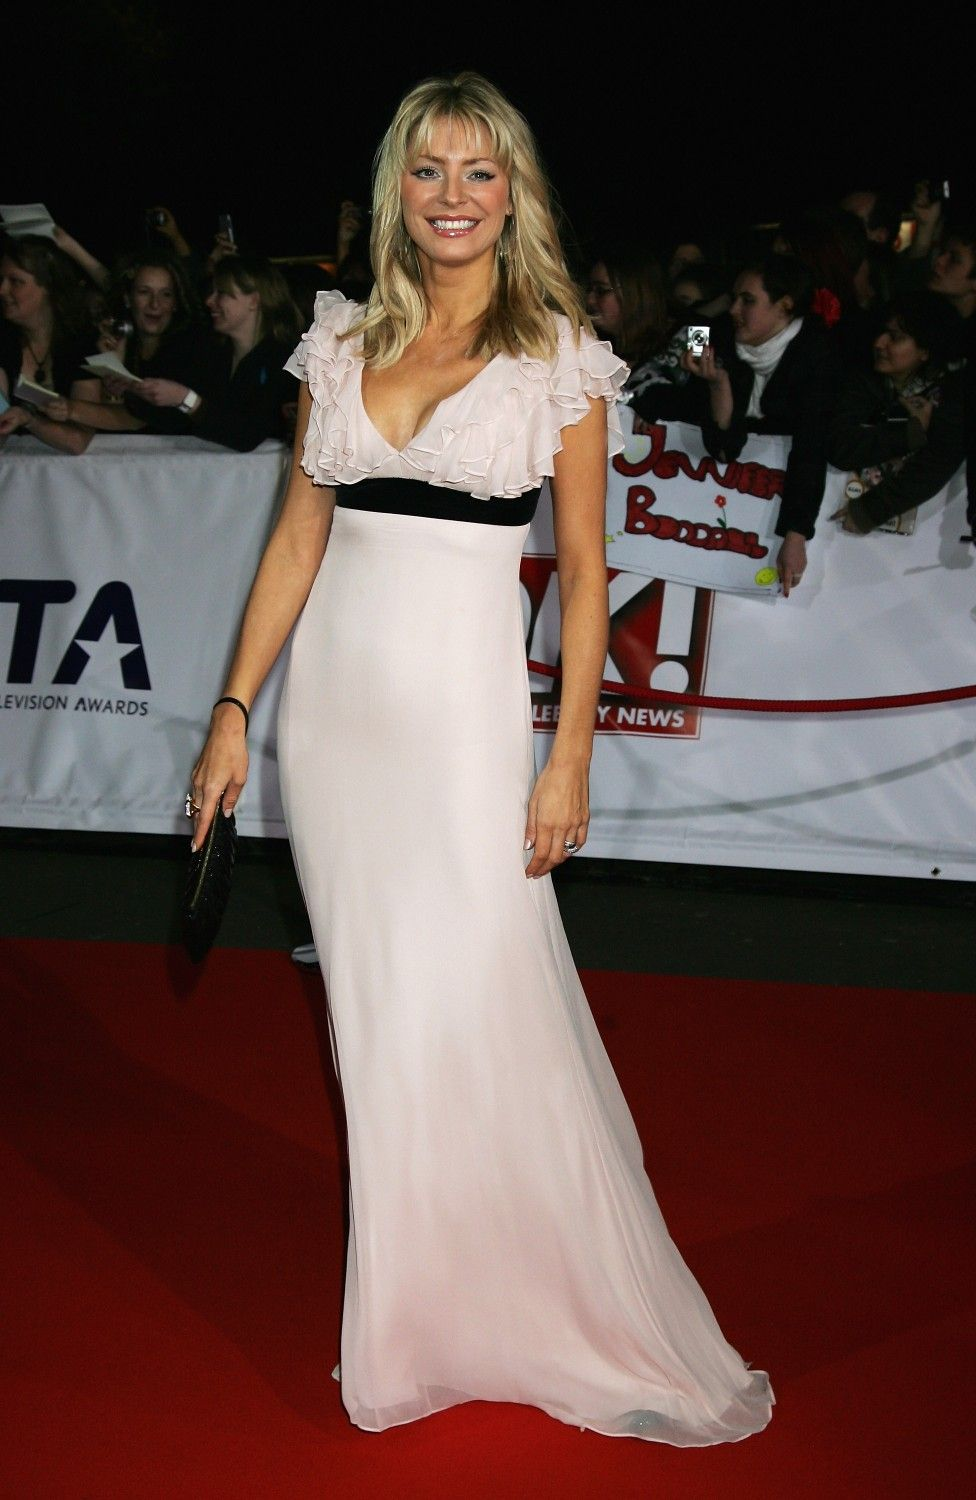 Pin by Dave on Tess Daly | Pinterest